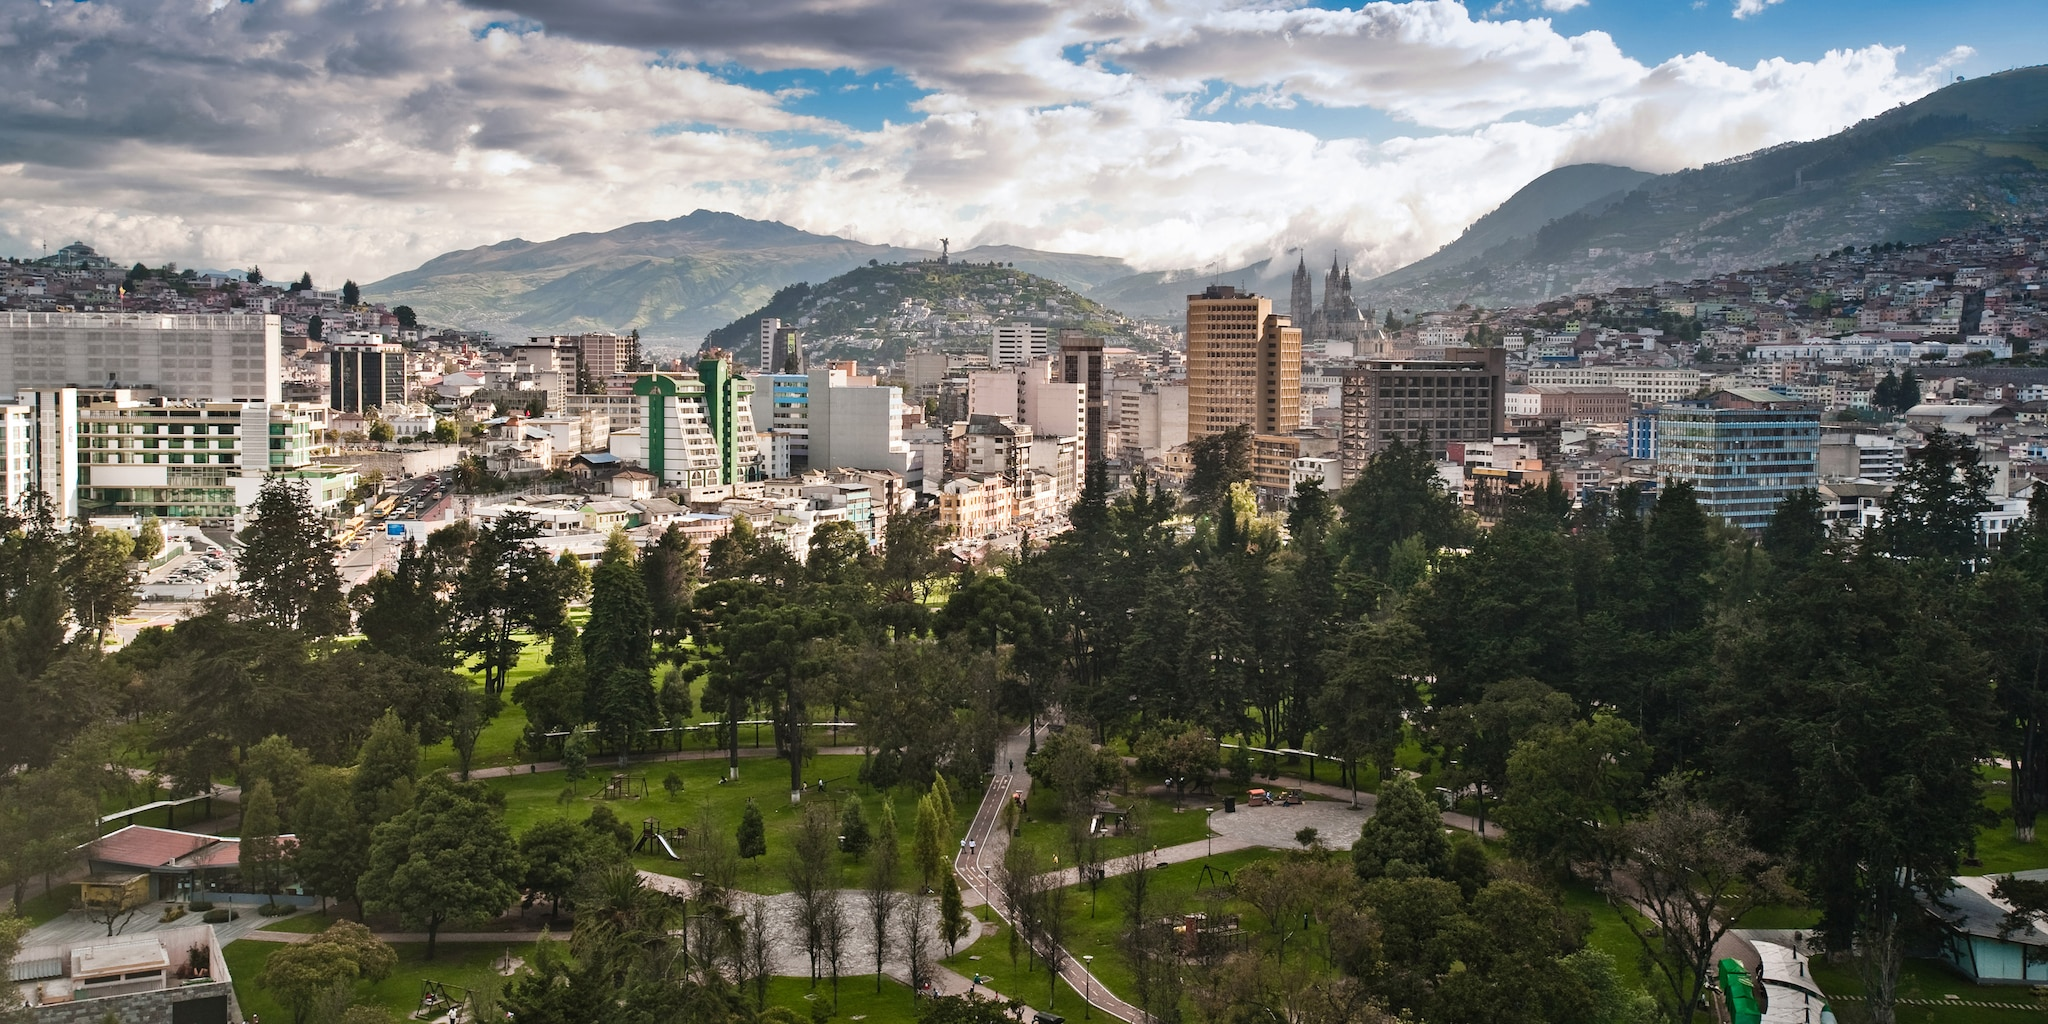 A park surrounded by the city and mountains of Quito, Ecuador